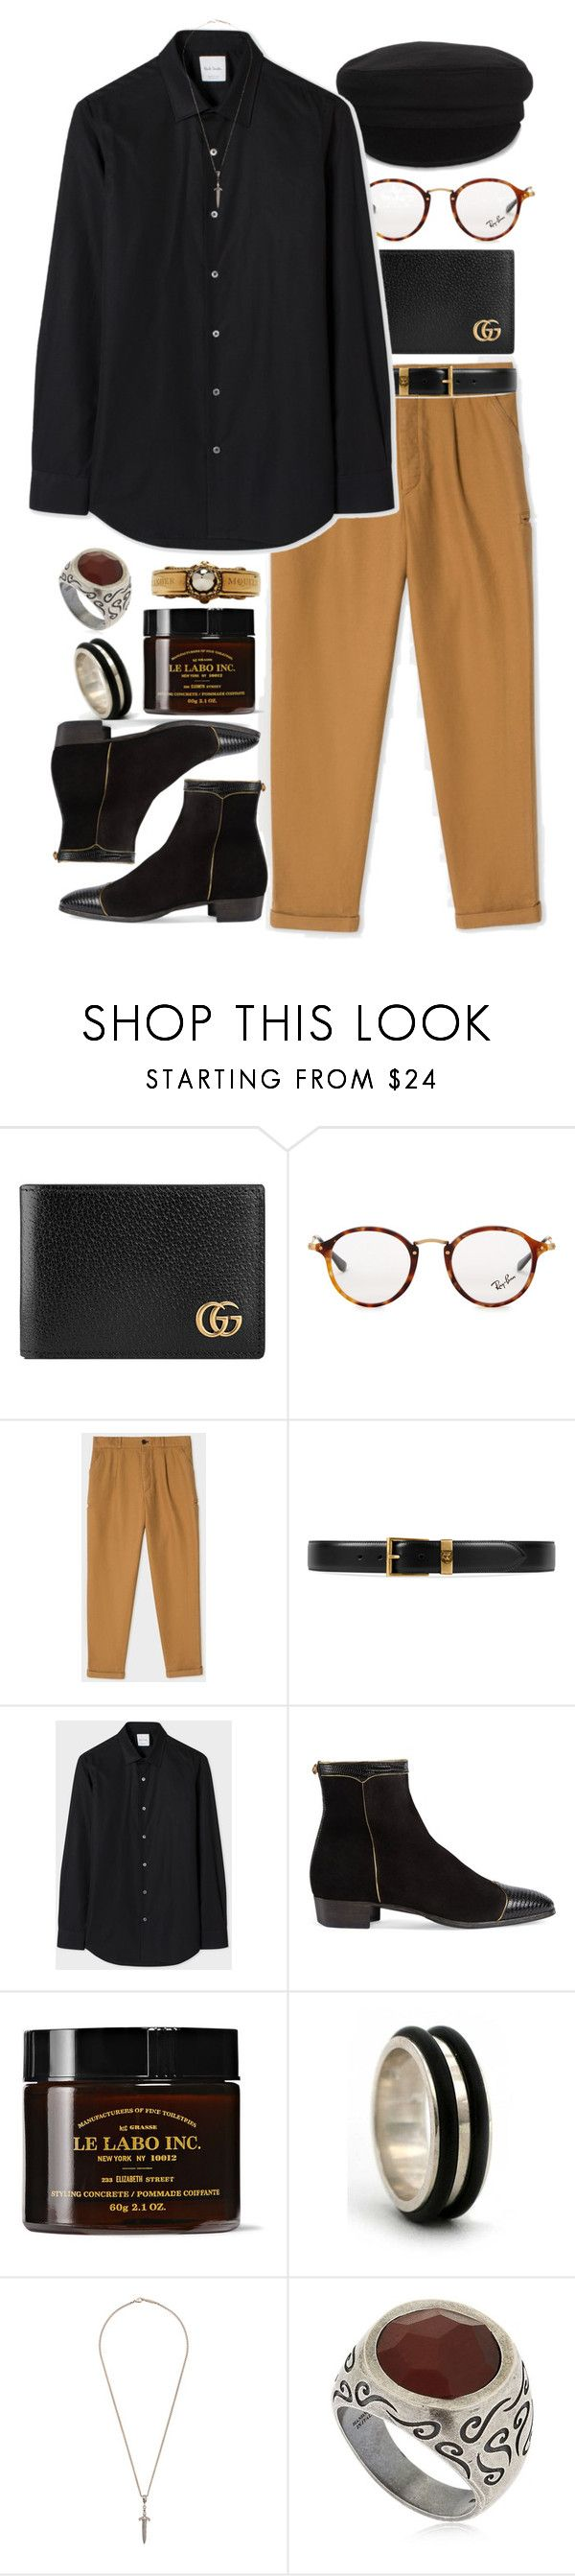 """Inspired by Harry Styles"" by nikka-phillips ❤ liked on Polyvore featuring Gucci, Ray-Ban, Étoile Isabel Marant, PS Paul Smith, Paul Smith, Le Labo, NOVICA, Roman Paul, Marco Ta Moko and Alexander McQueen"